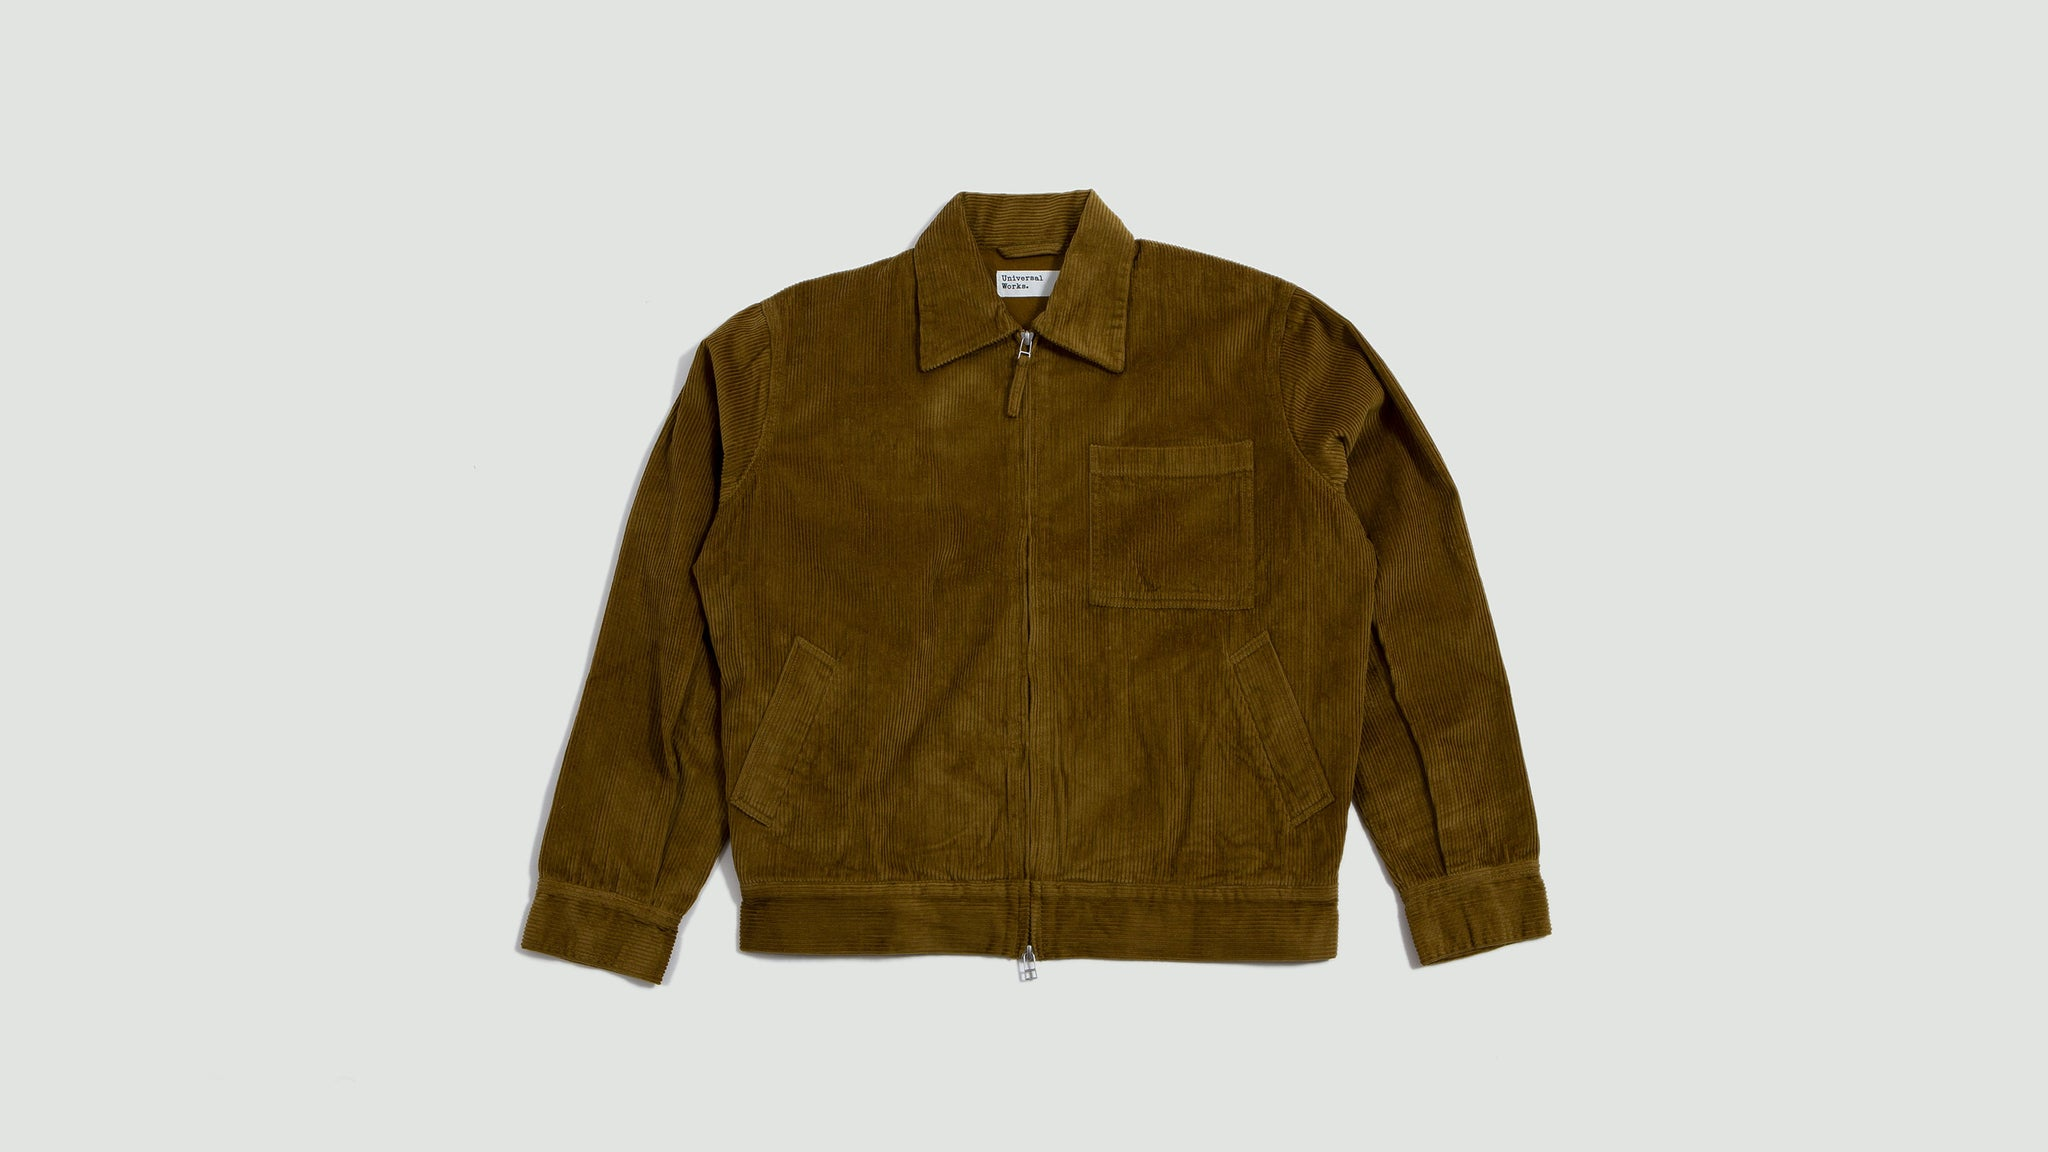 Rose Bowl jacket wale cord mustard